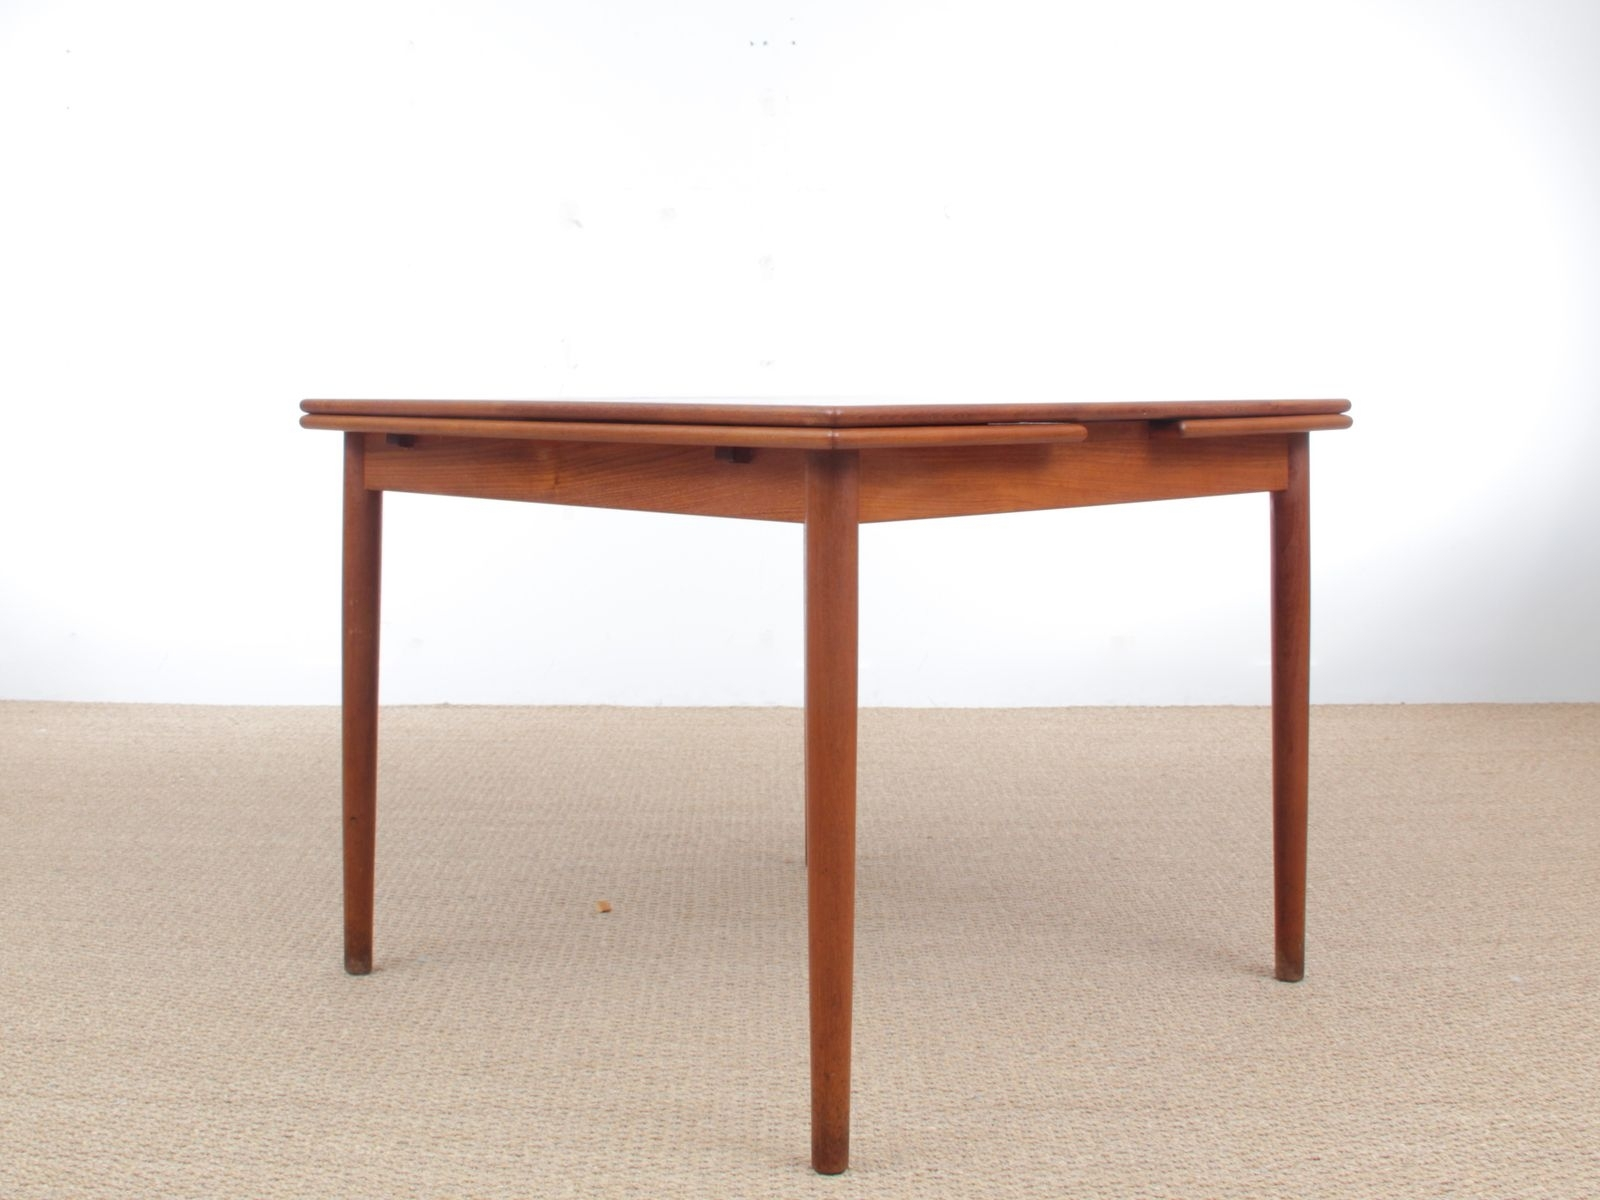 Teak Dining Table, 1960S For Sale At Pamono Inside Most Recent Lassen Extension Rectangle Dining Tables (View 15 of 20)